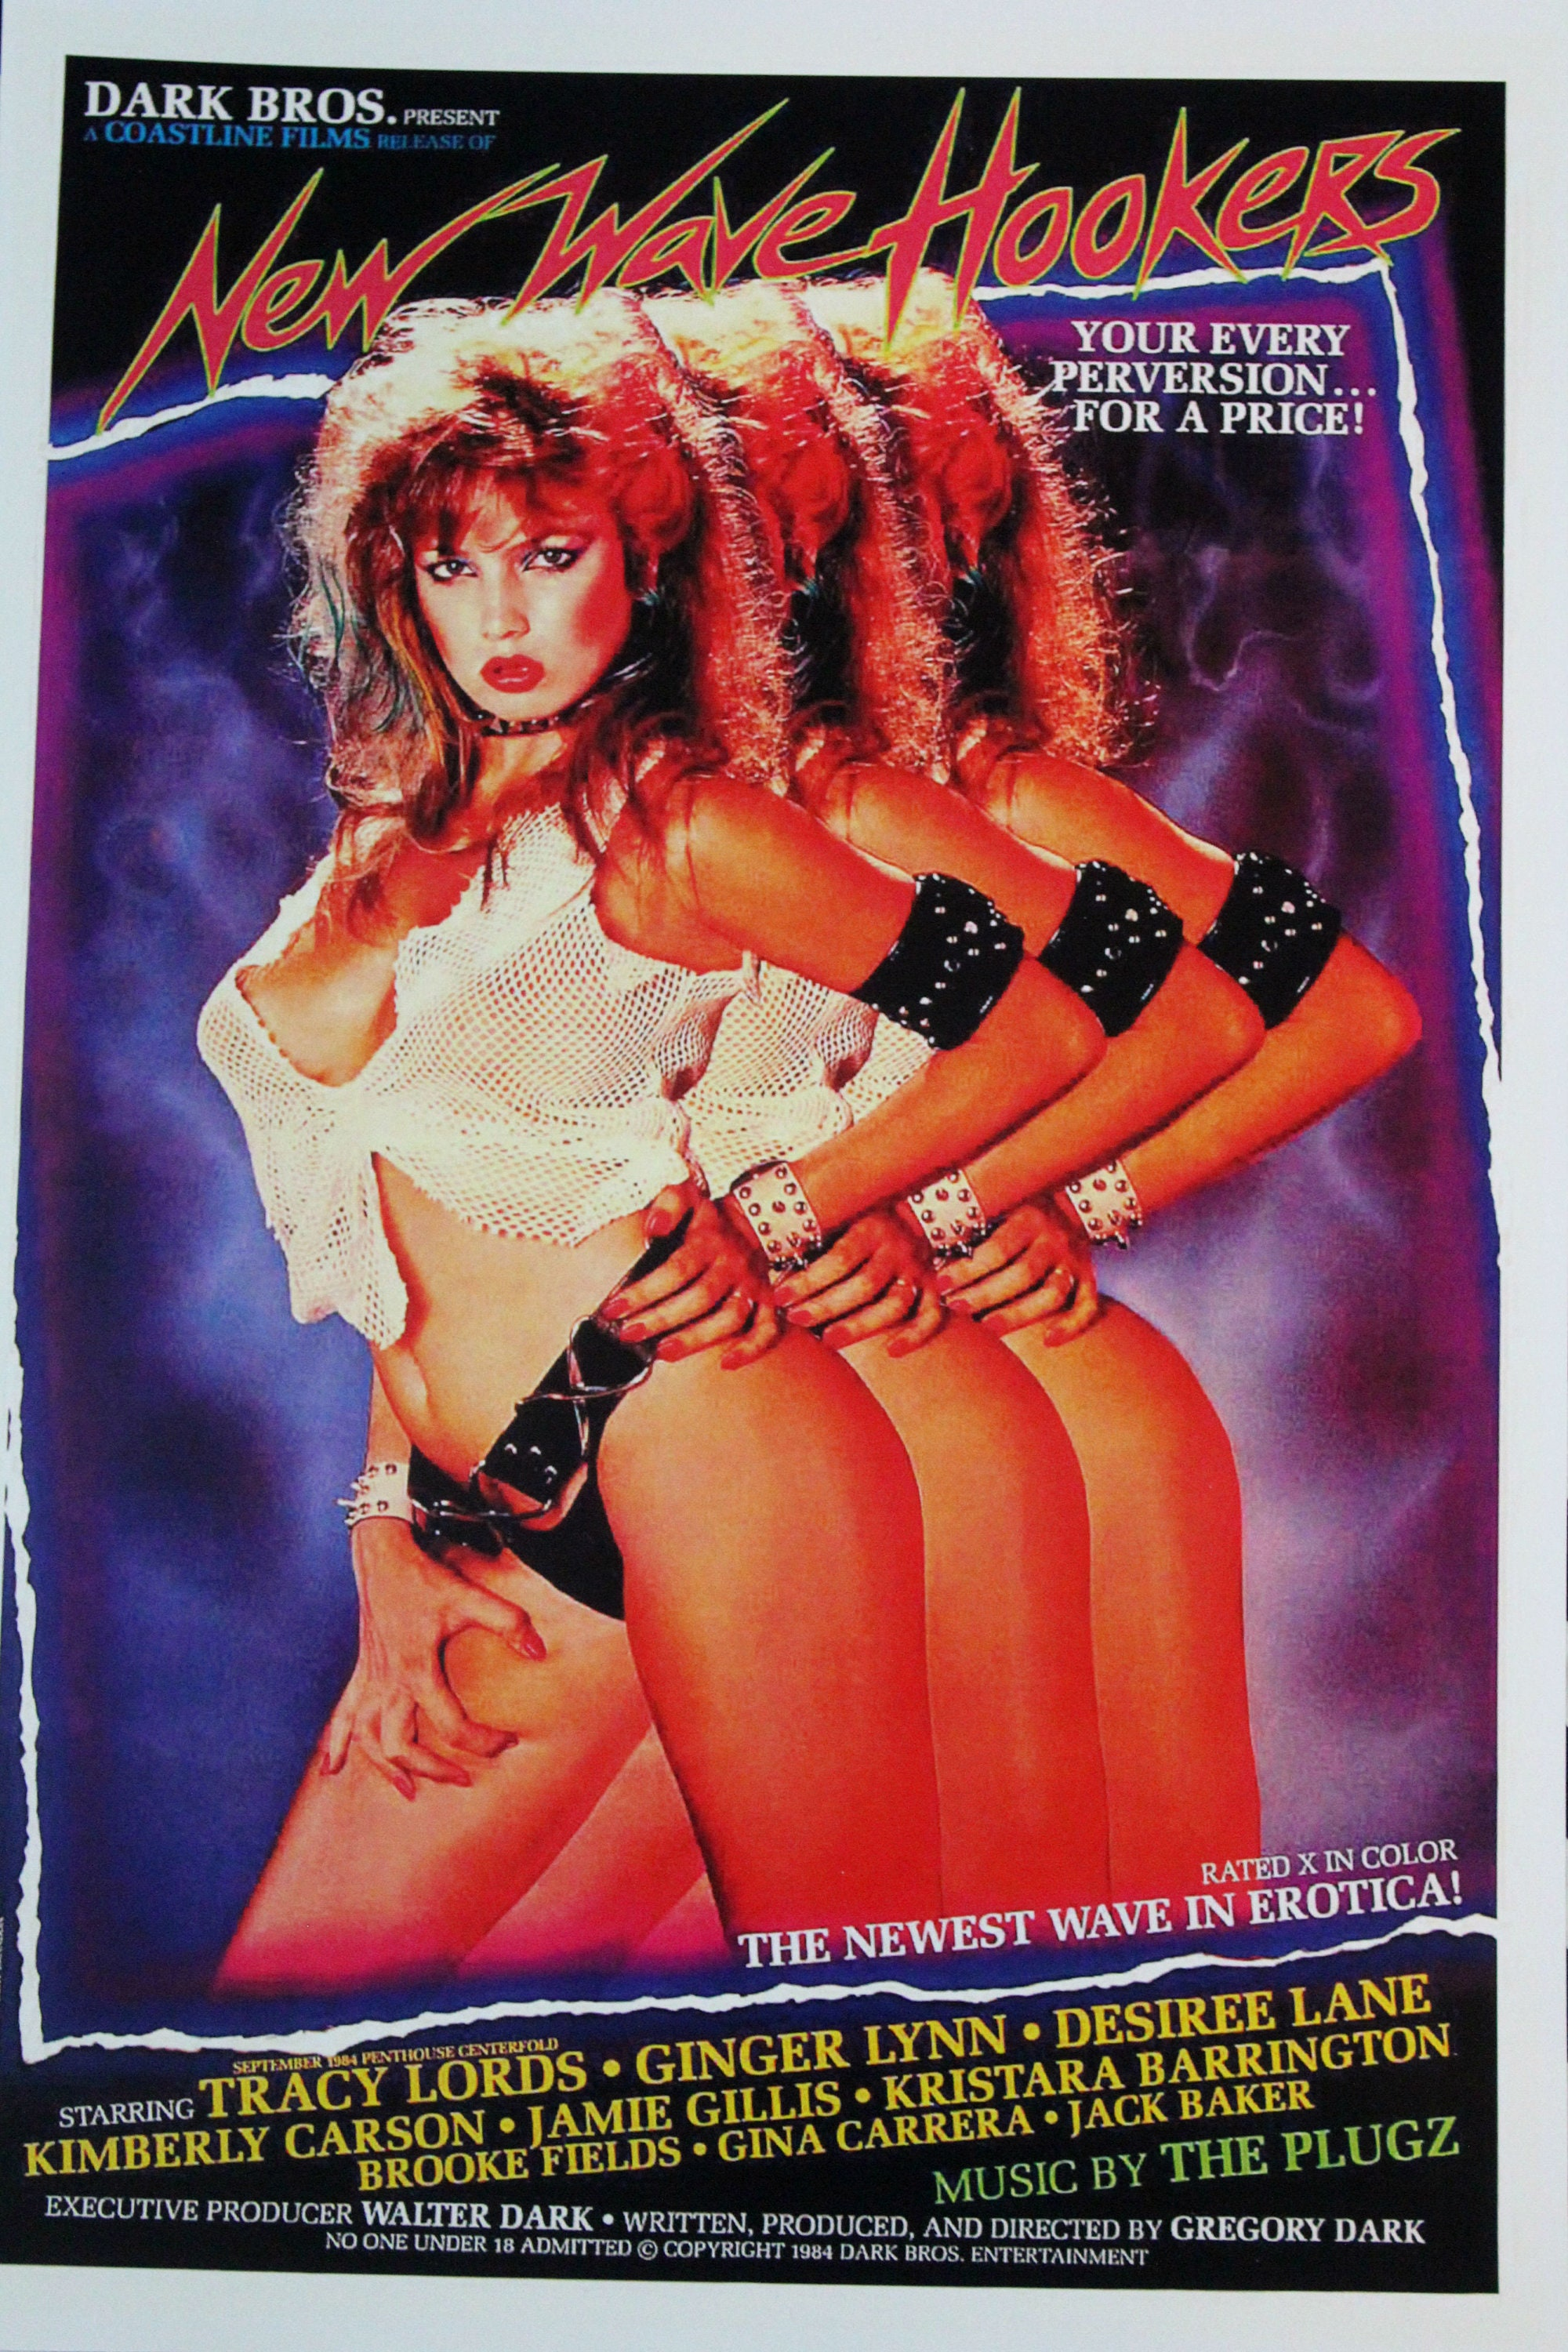 Vintage Porno Poster. New Wave Hookers Retro 80s Porno VHS Cover Limited  Print. Sexy 80s Punk Retro Porn Art Deadstock. Limited Porn Art